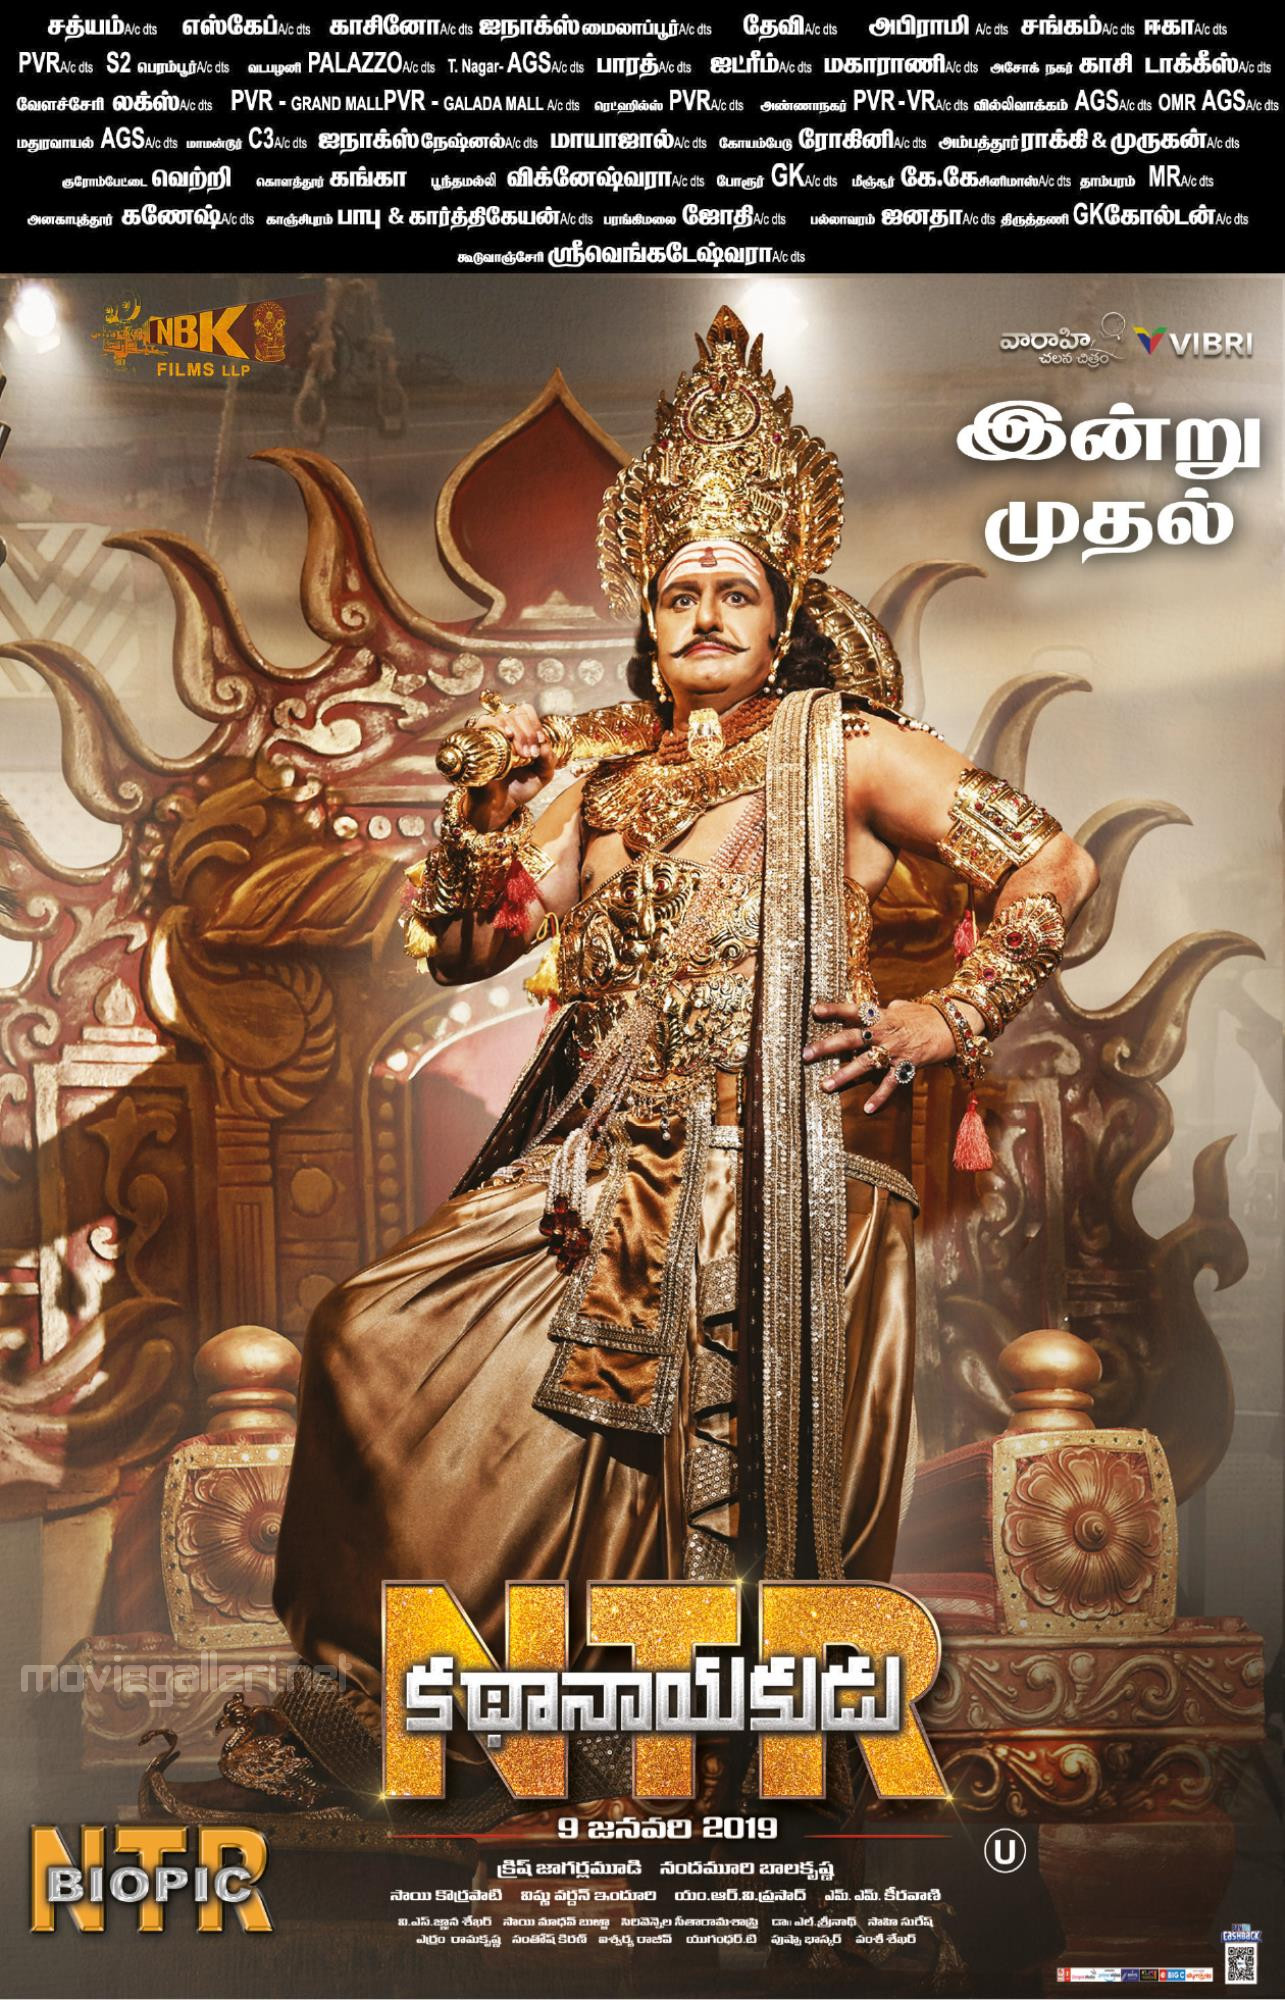 Balakrishna NTR Biopic Movie Release Today Poster HD